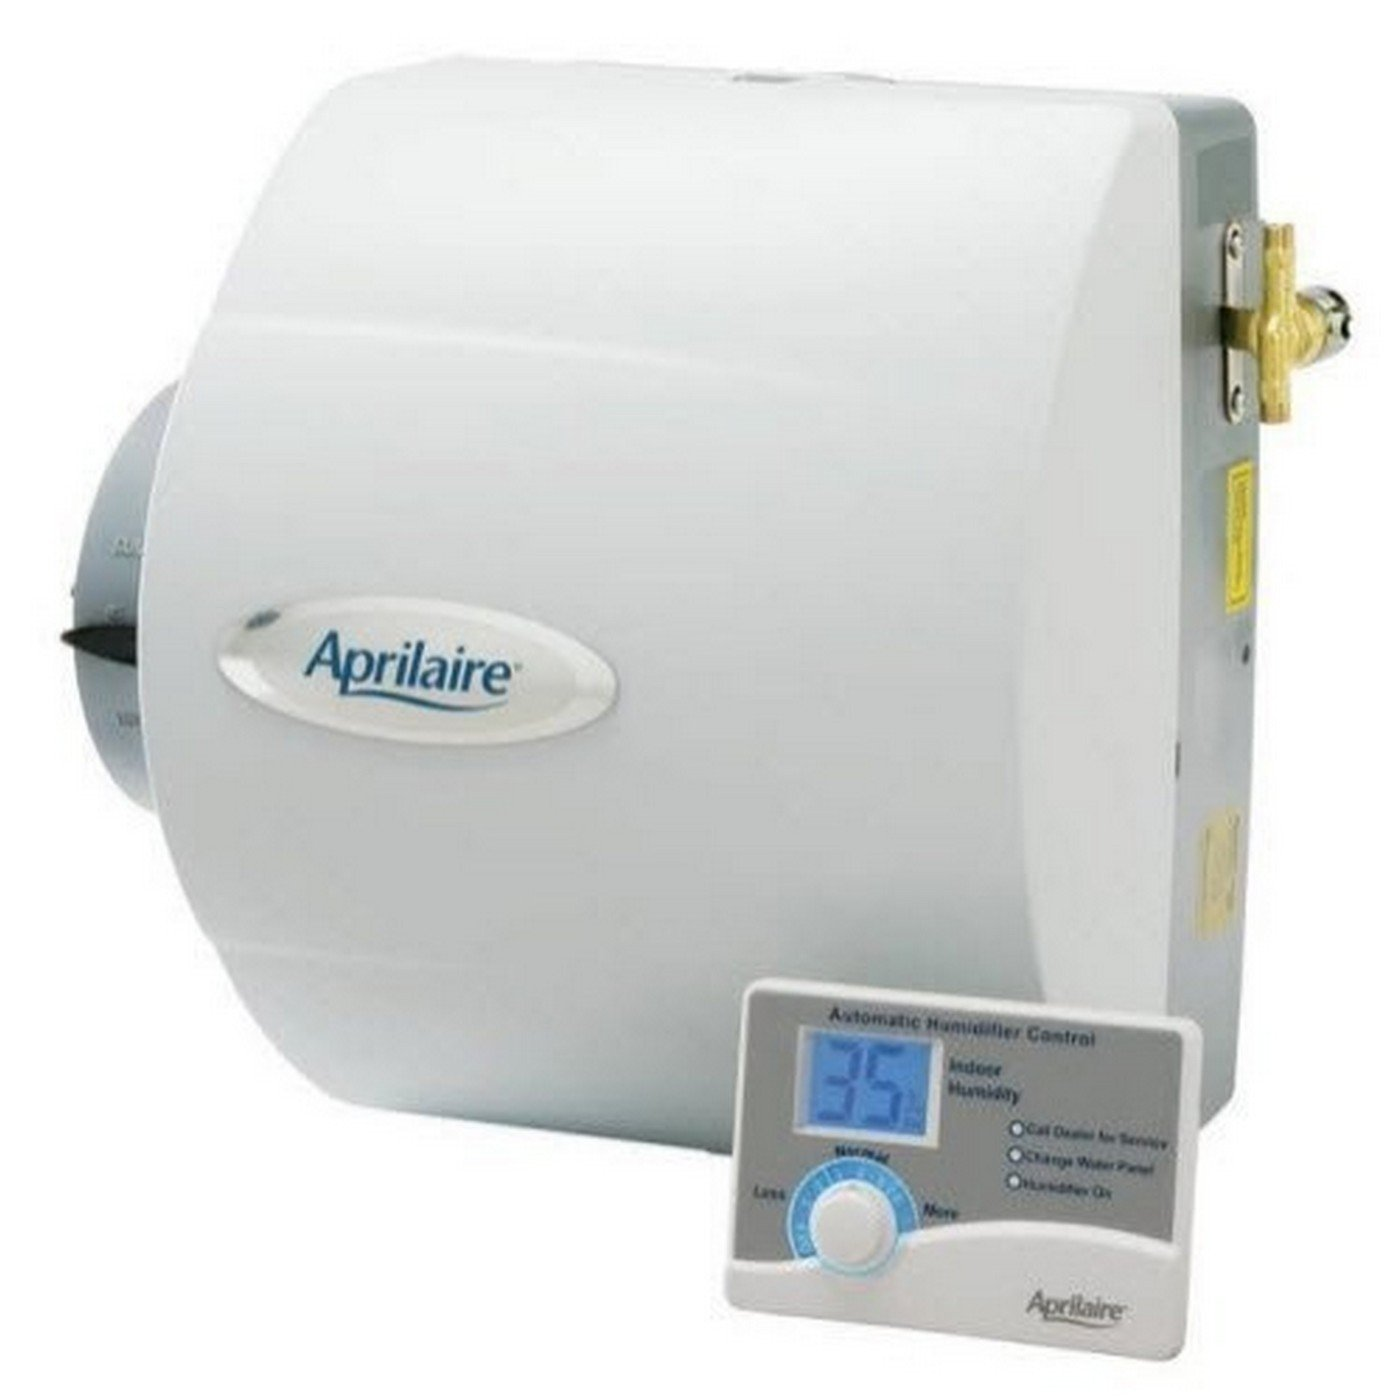 best whole house humidifier Aprilaire 400 Humidifier Whole House w  #396492